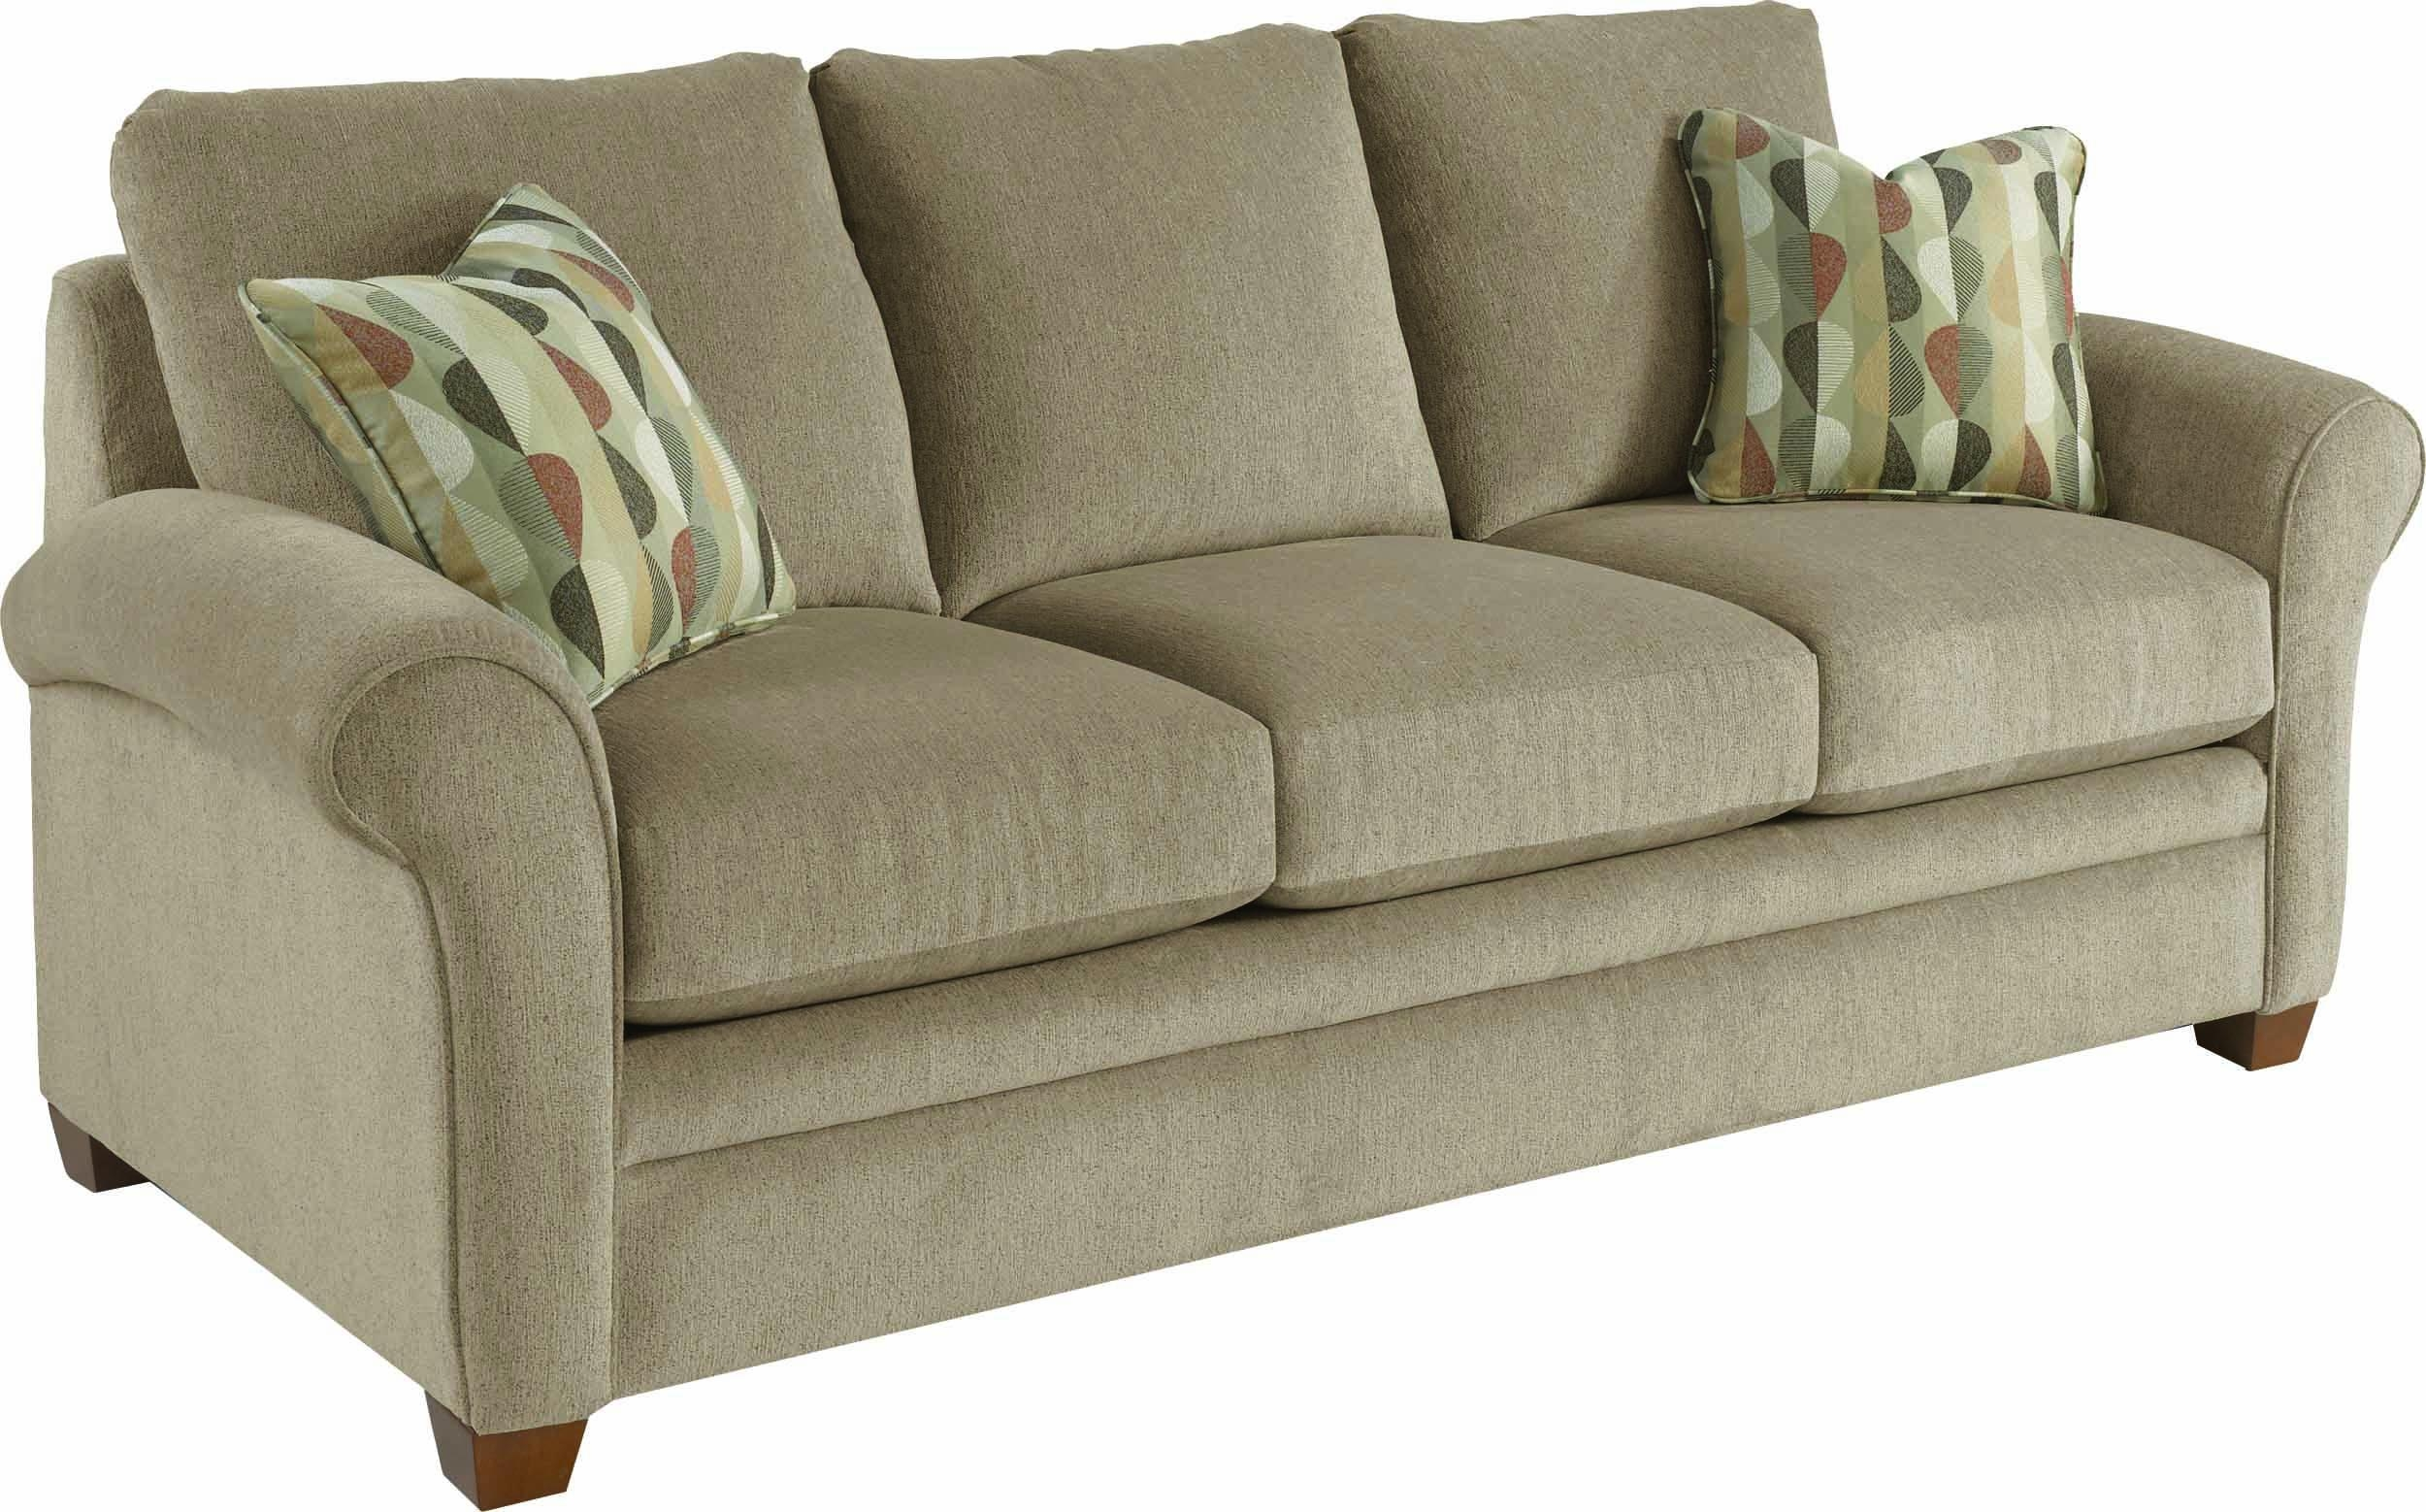 Lazy Boy Sofa Bed Pertaining To Lazy Boy Sofas (View 4 of 20)